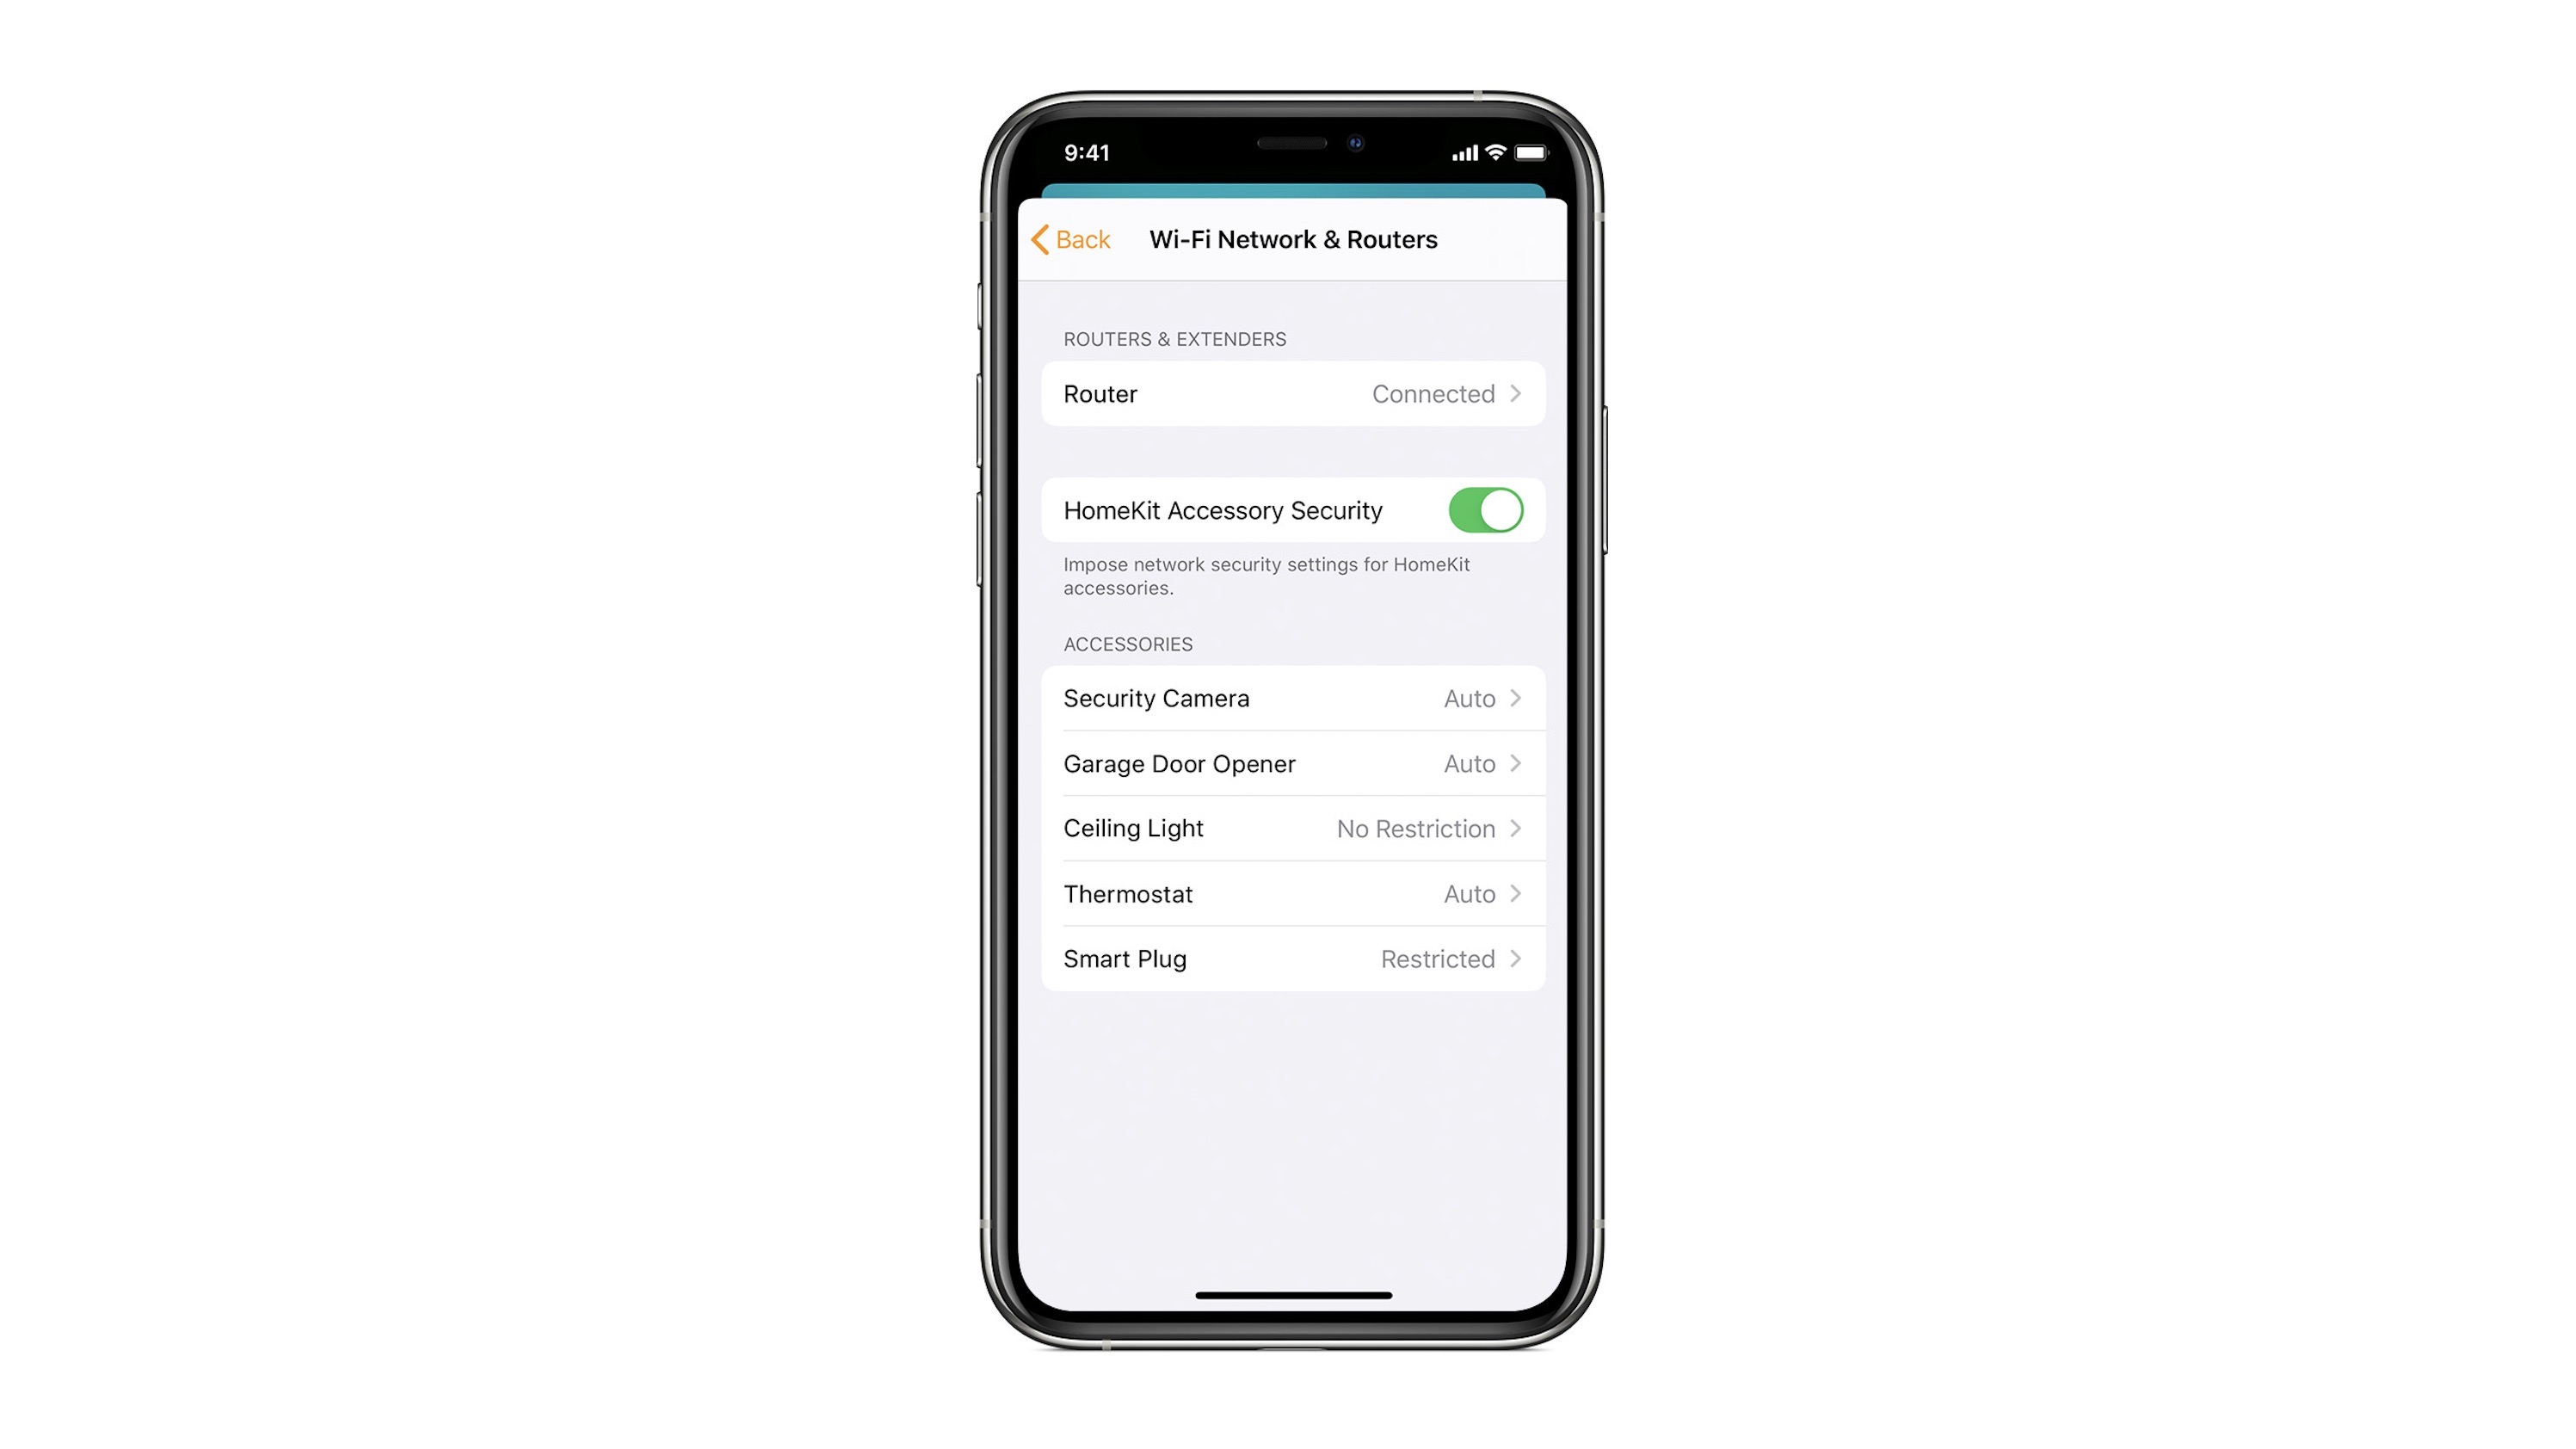 Apple support document details HomeKit router features and